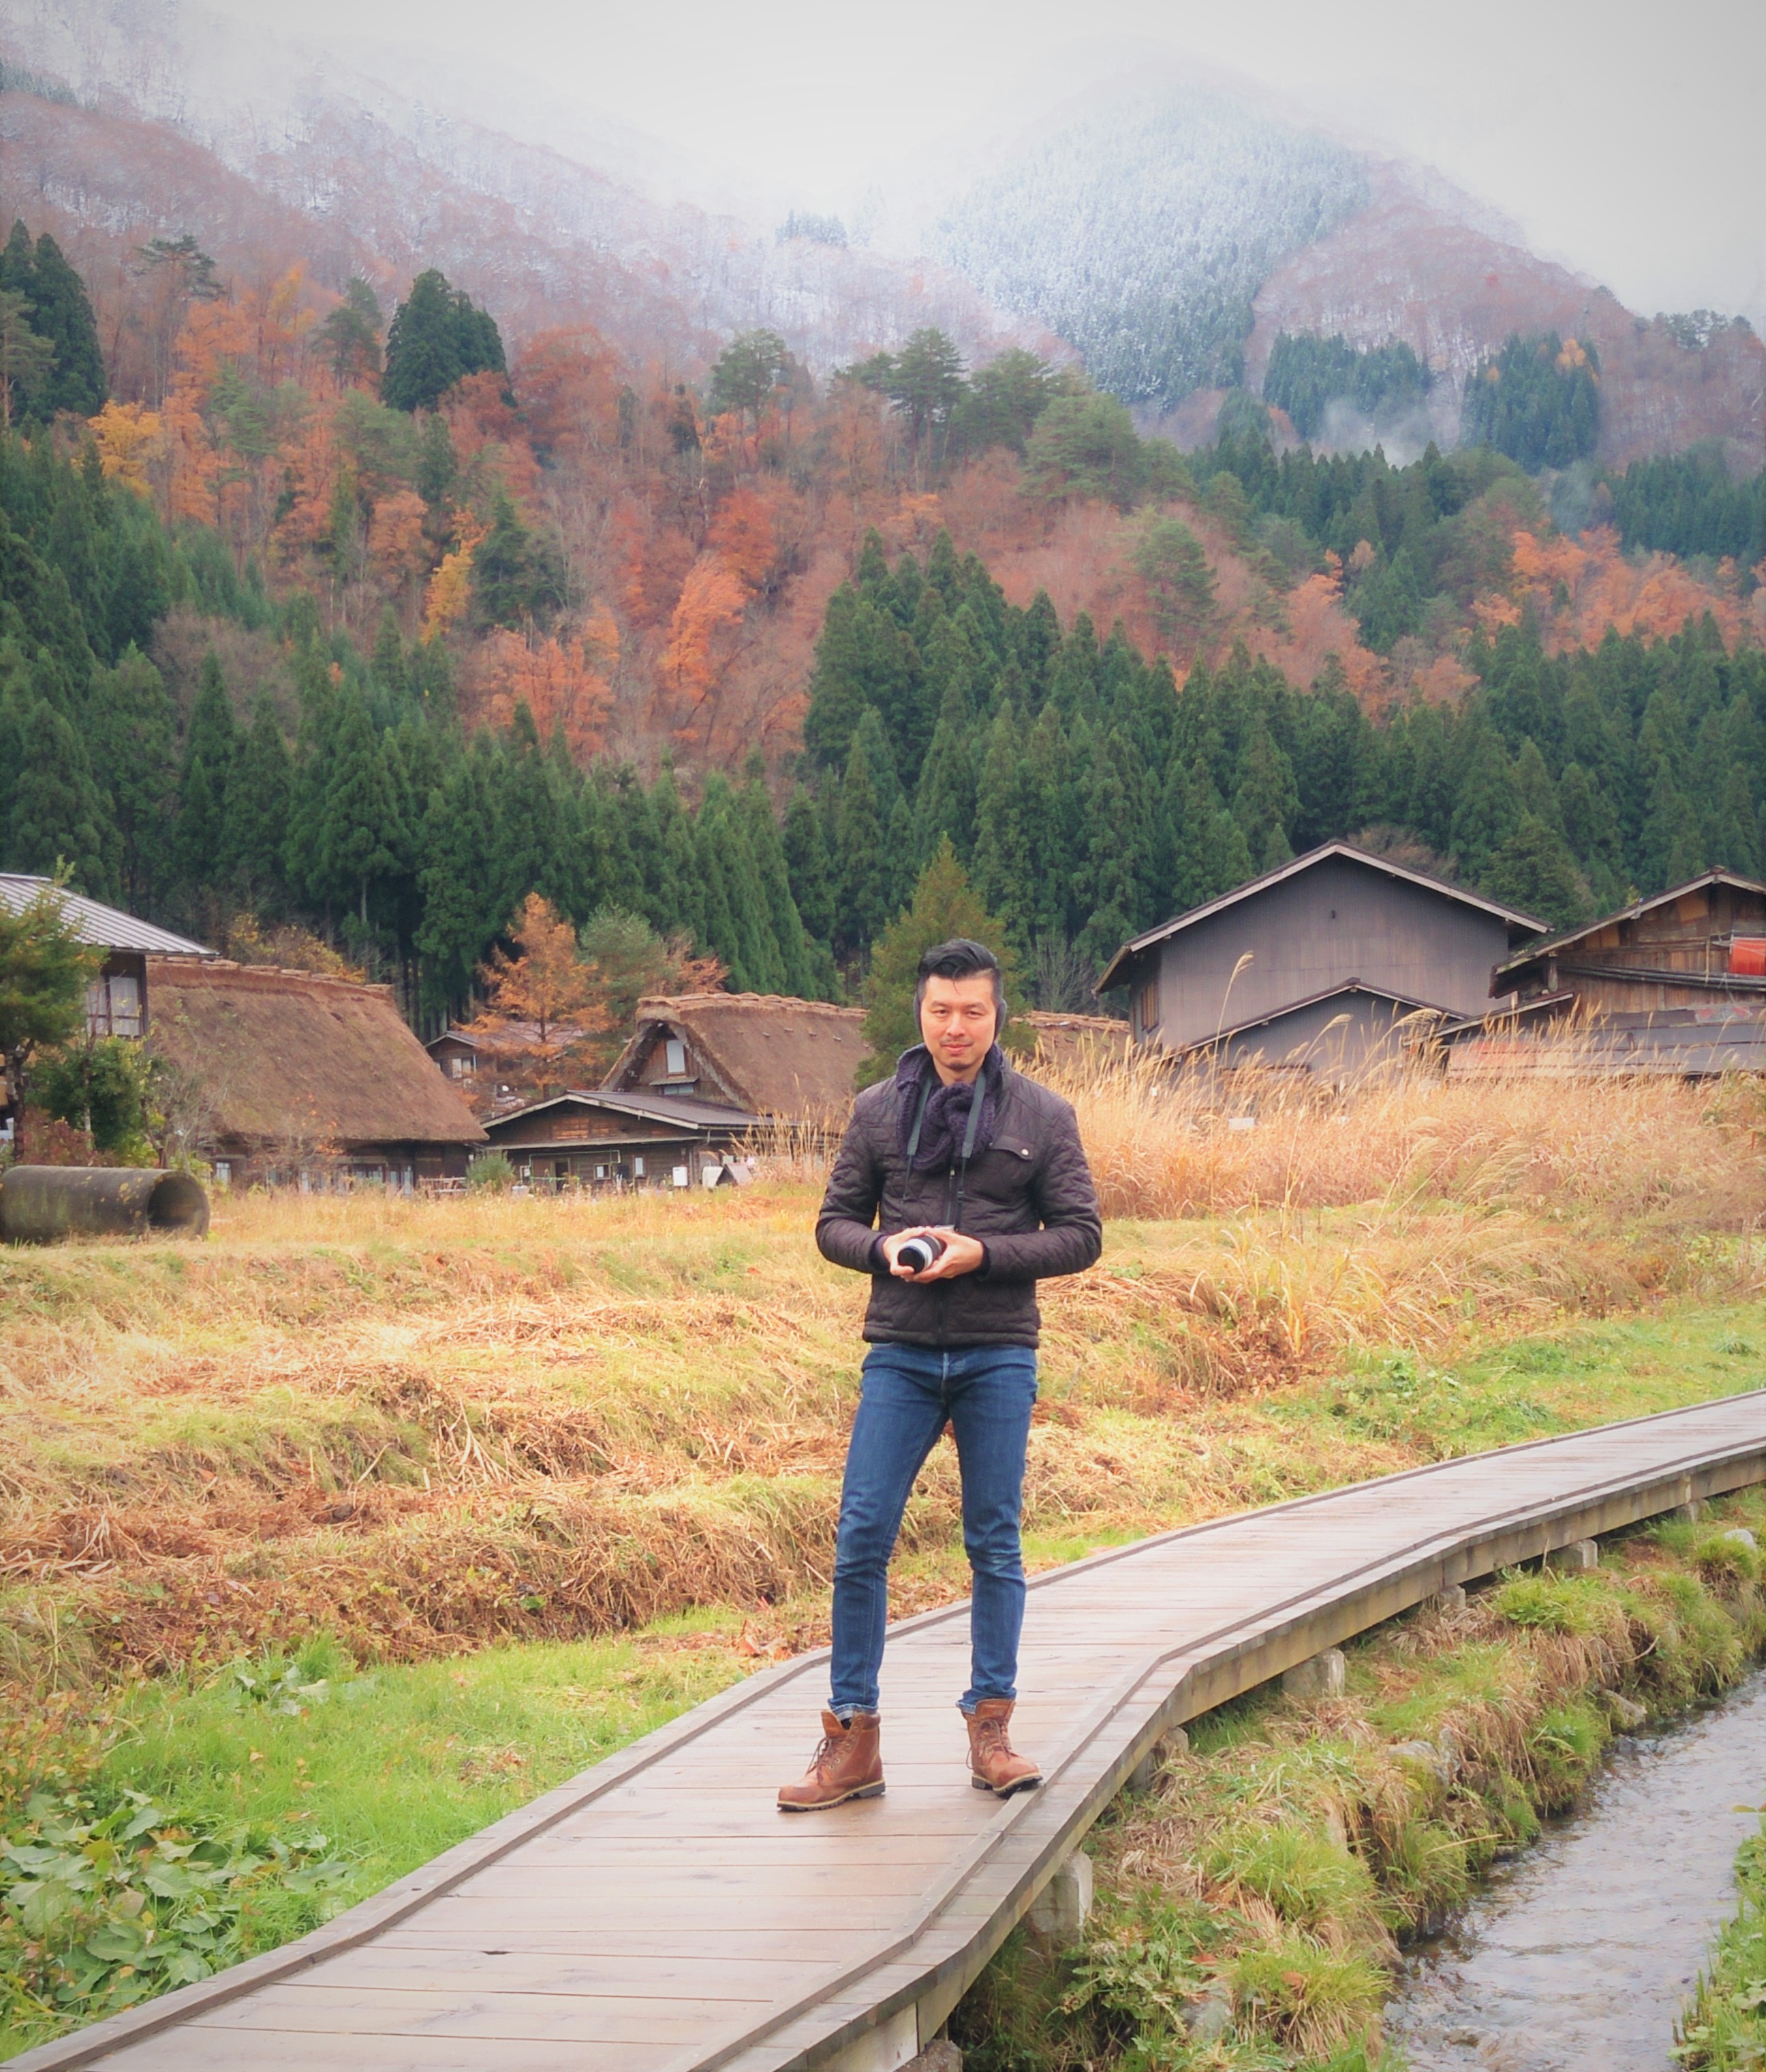 Carry It Like Harry - Explore the most beautiful village in Japan: Shirakawa-go 白川郷